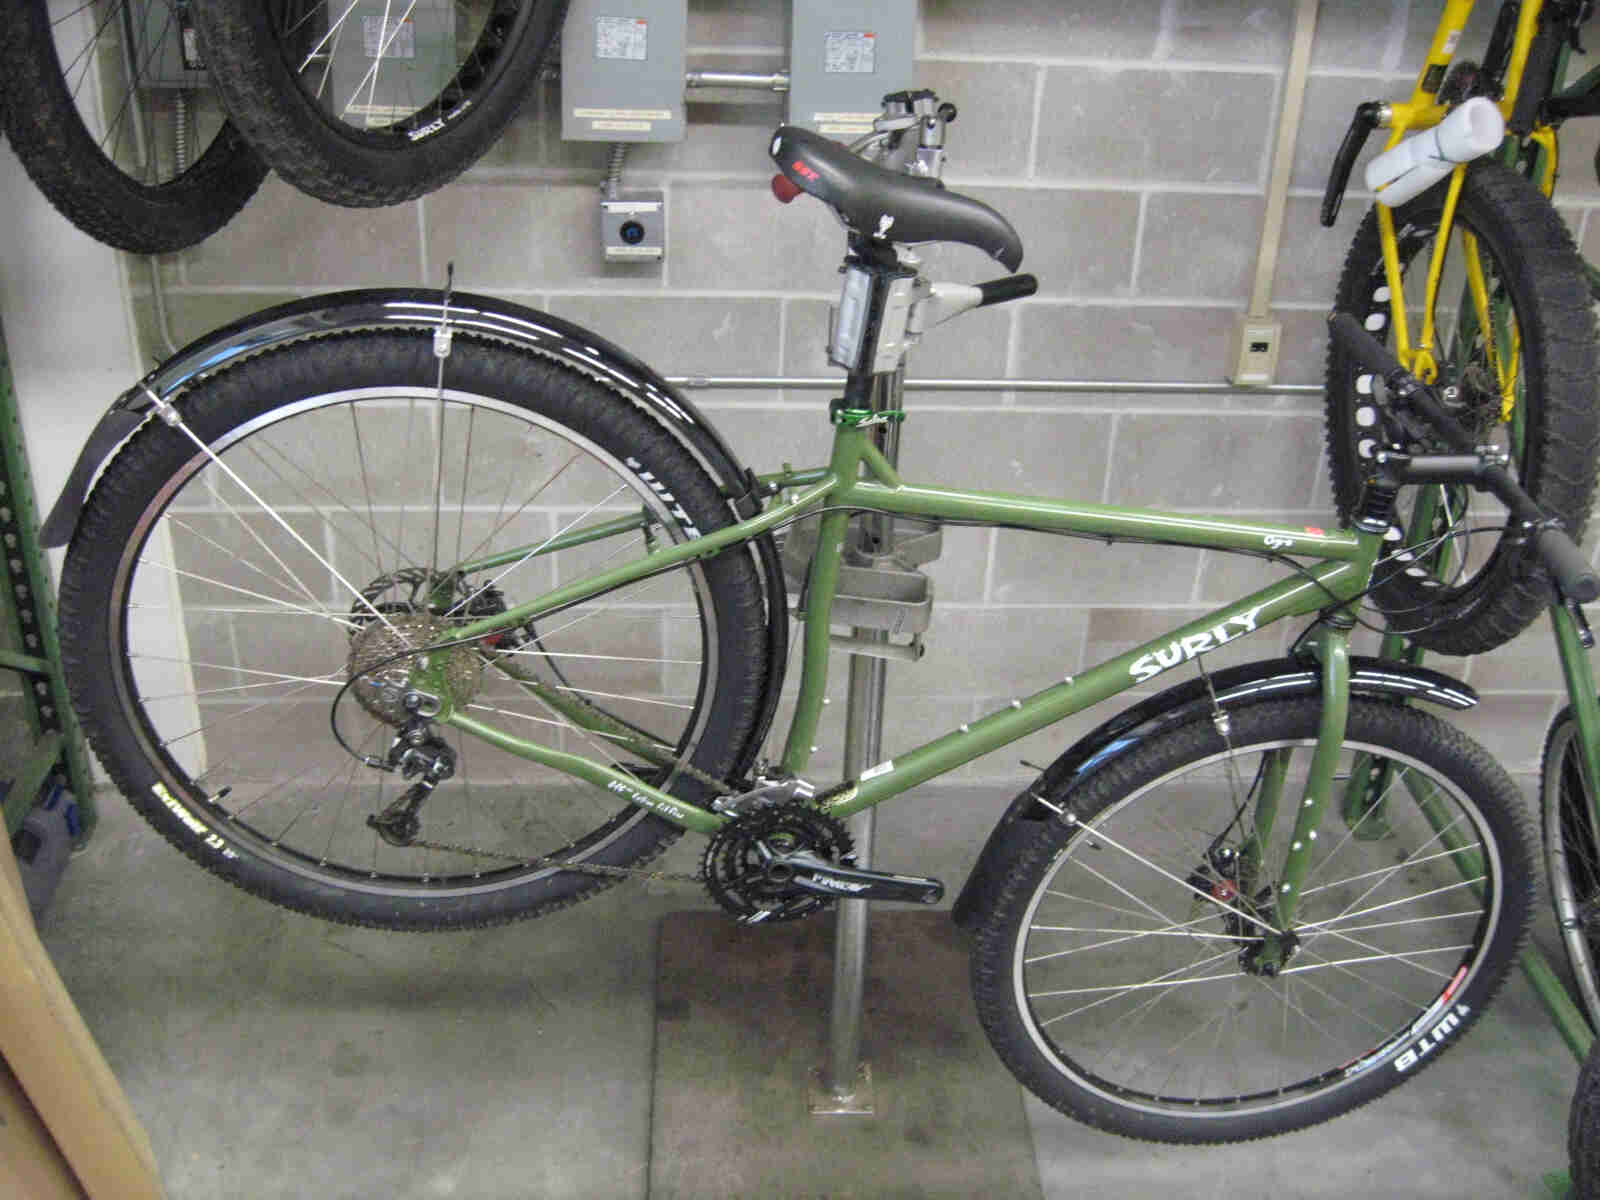 Right side view of a green Surly Ogre bike with fenders, mounted to a bike repair stand, inside a workshop room